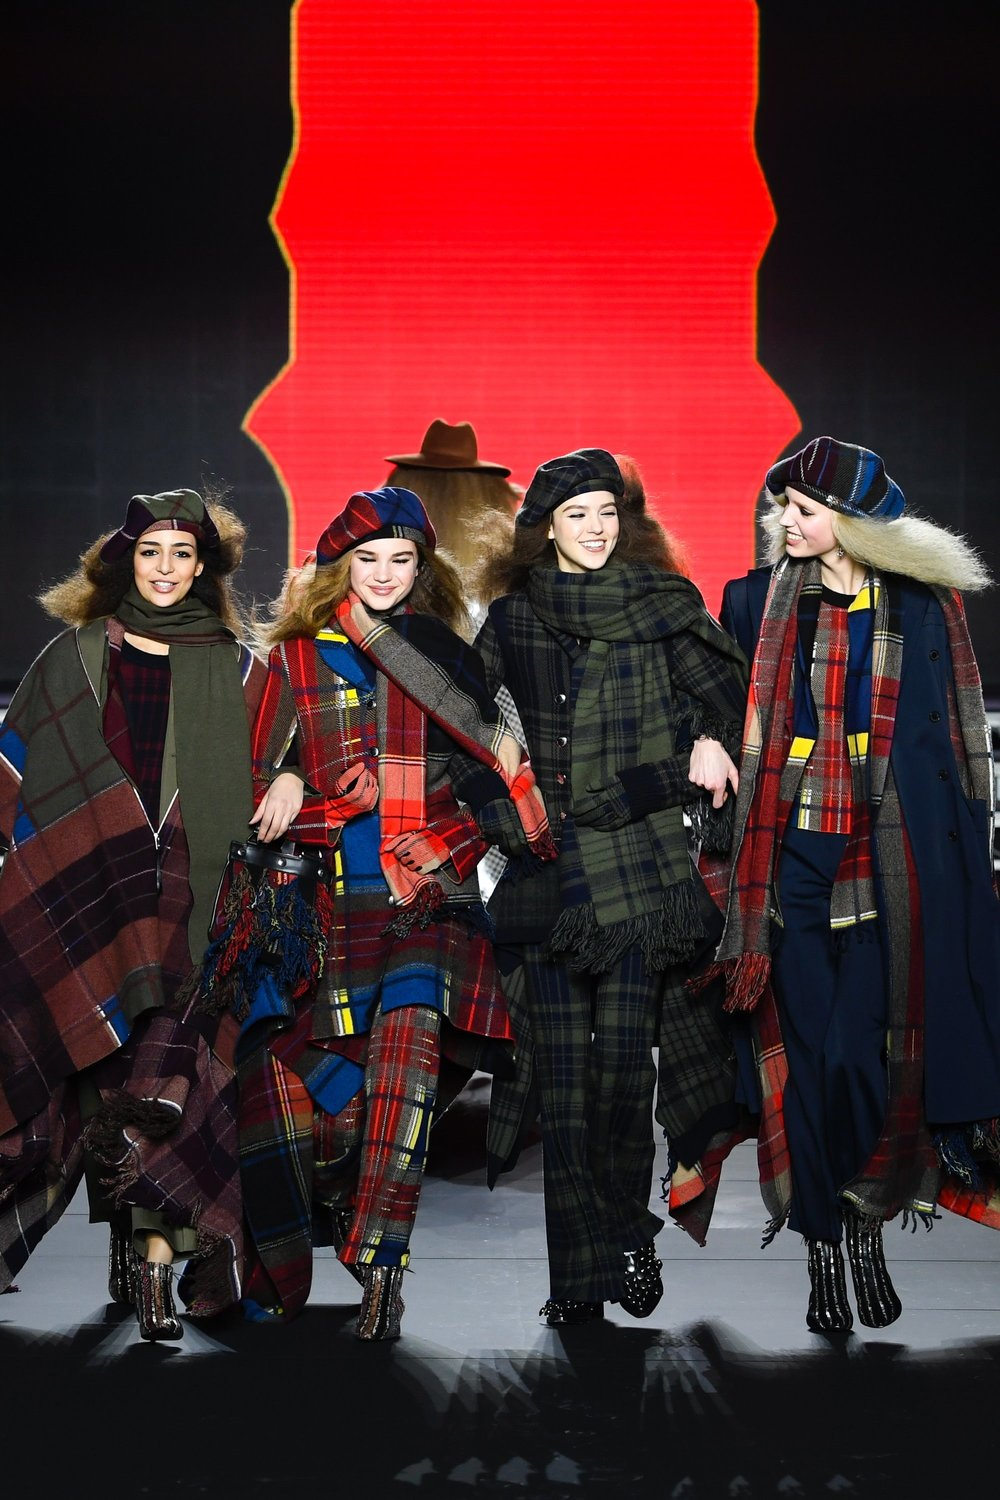 Sonia Rykiel Ready-to-Wear Fall 2018  shows us zany clashing plaids